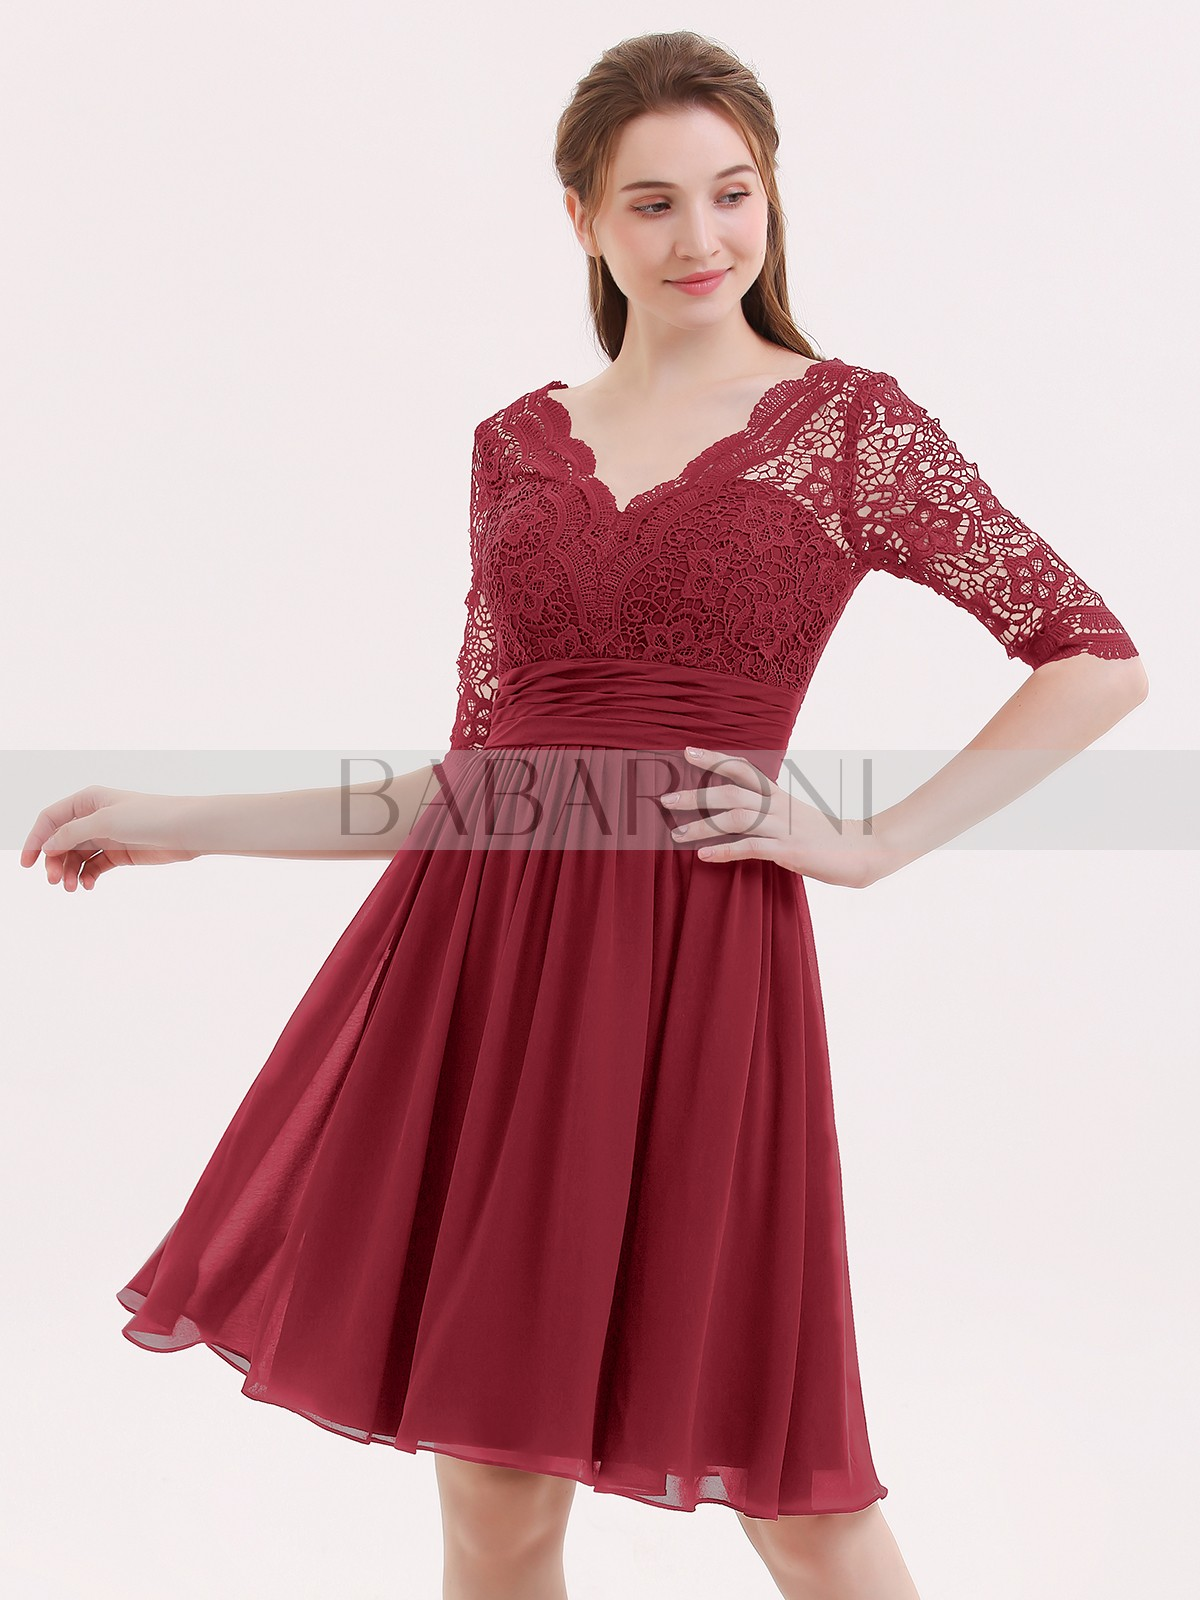 3be16a38b757 ... Short Prom Dresses; Babaroni Alexia. A-line Chiffon Burgundy Zipper Lace,  Ruched, Pleated Knee-length V-. Loading zoom